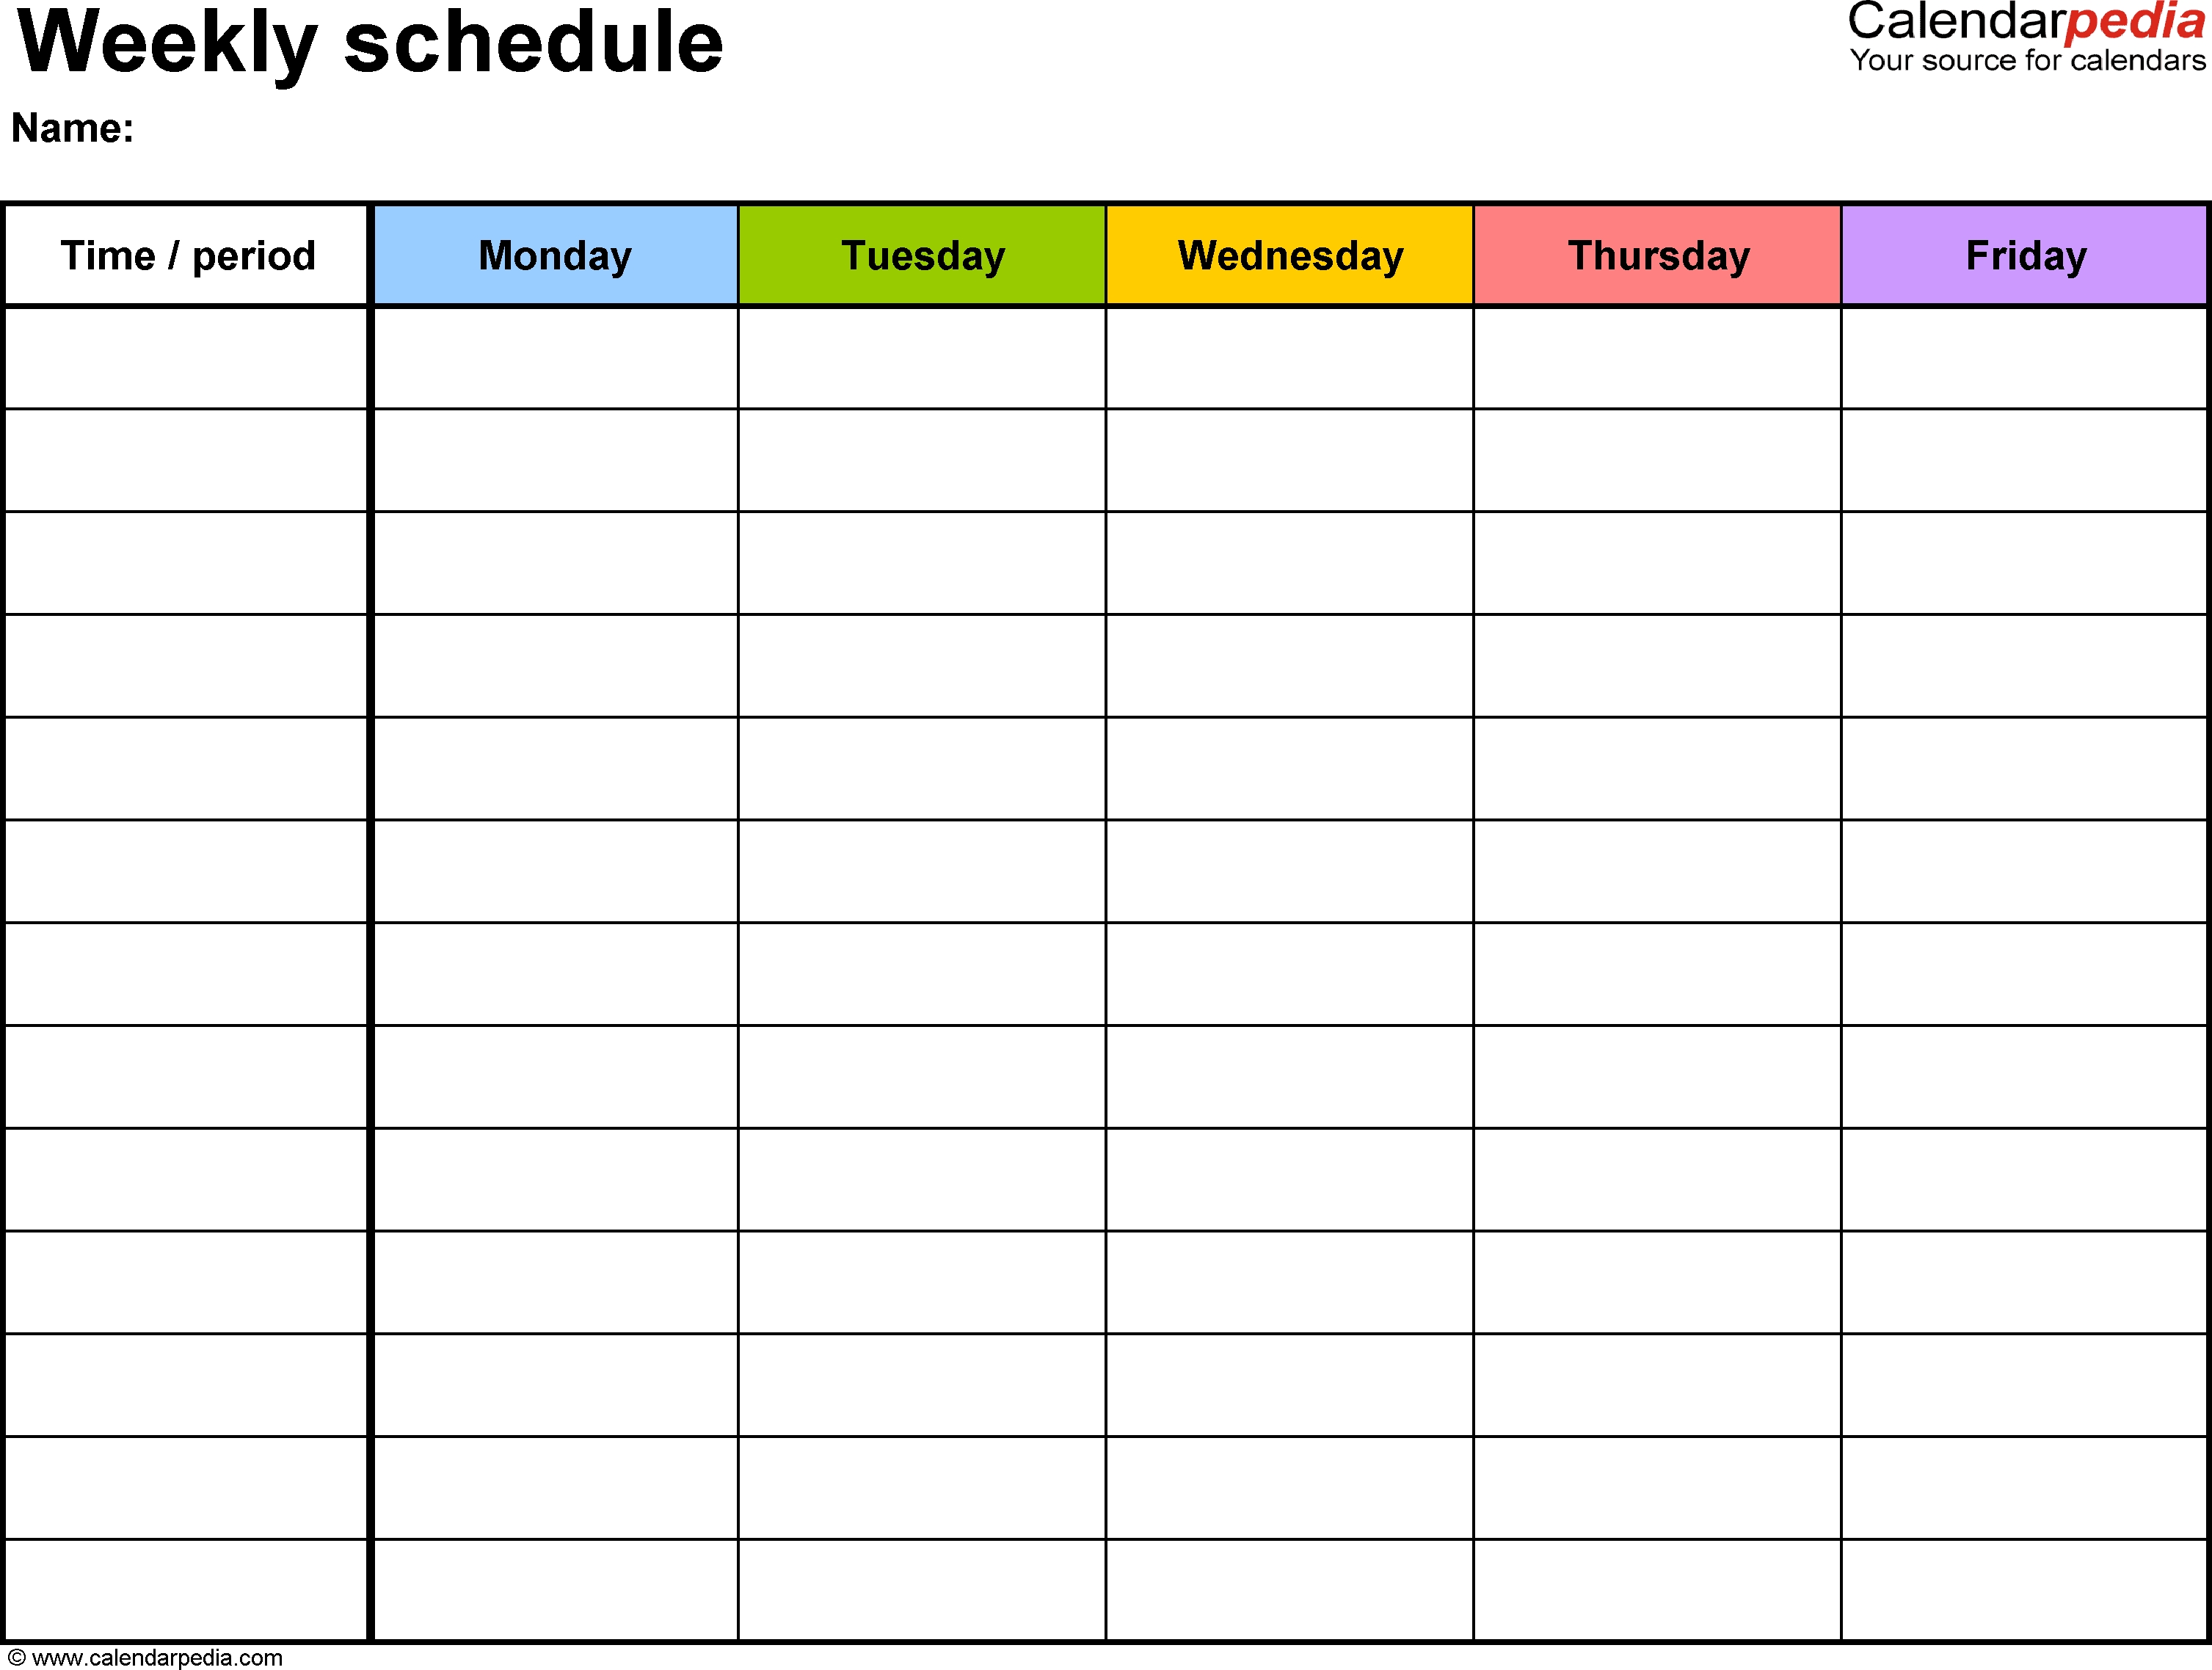 Free Weekly Schedule Templates For Word - 18 Templates-Template For Monday To Friday